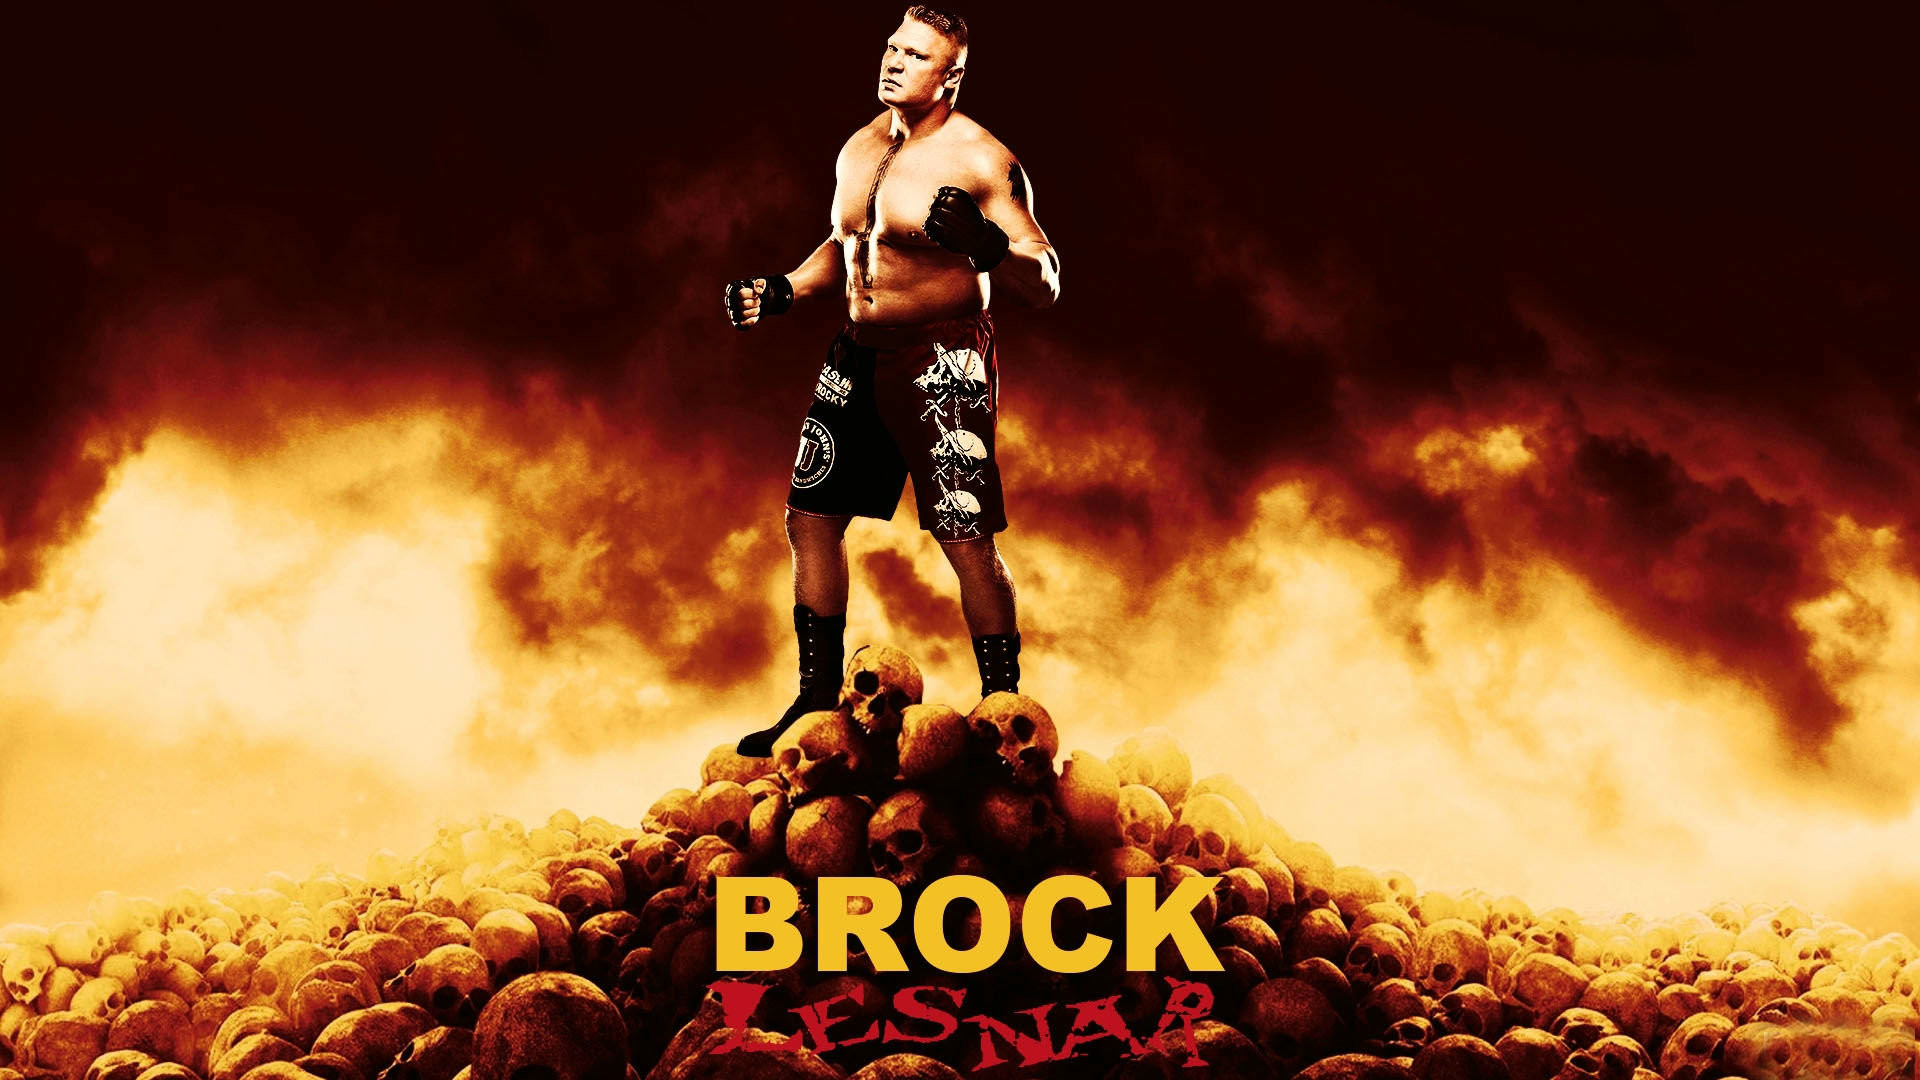 1920x1080 WWE Brock Lesnar Widescreen HD Wallpaper